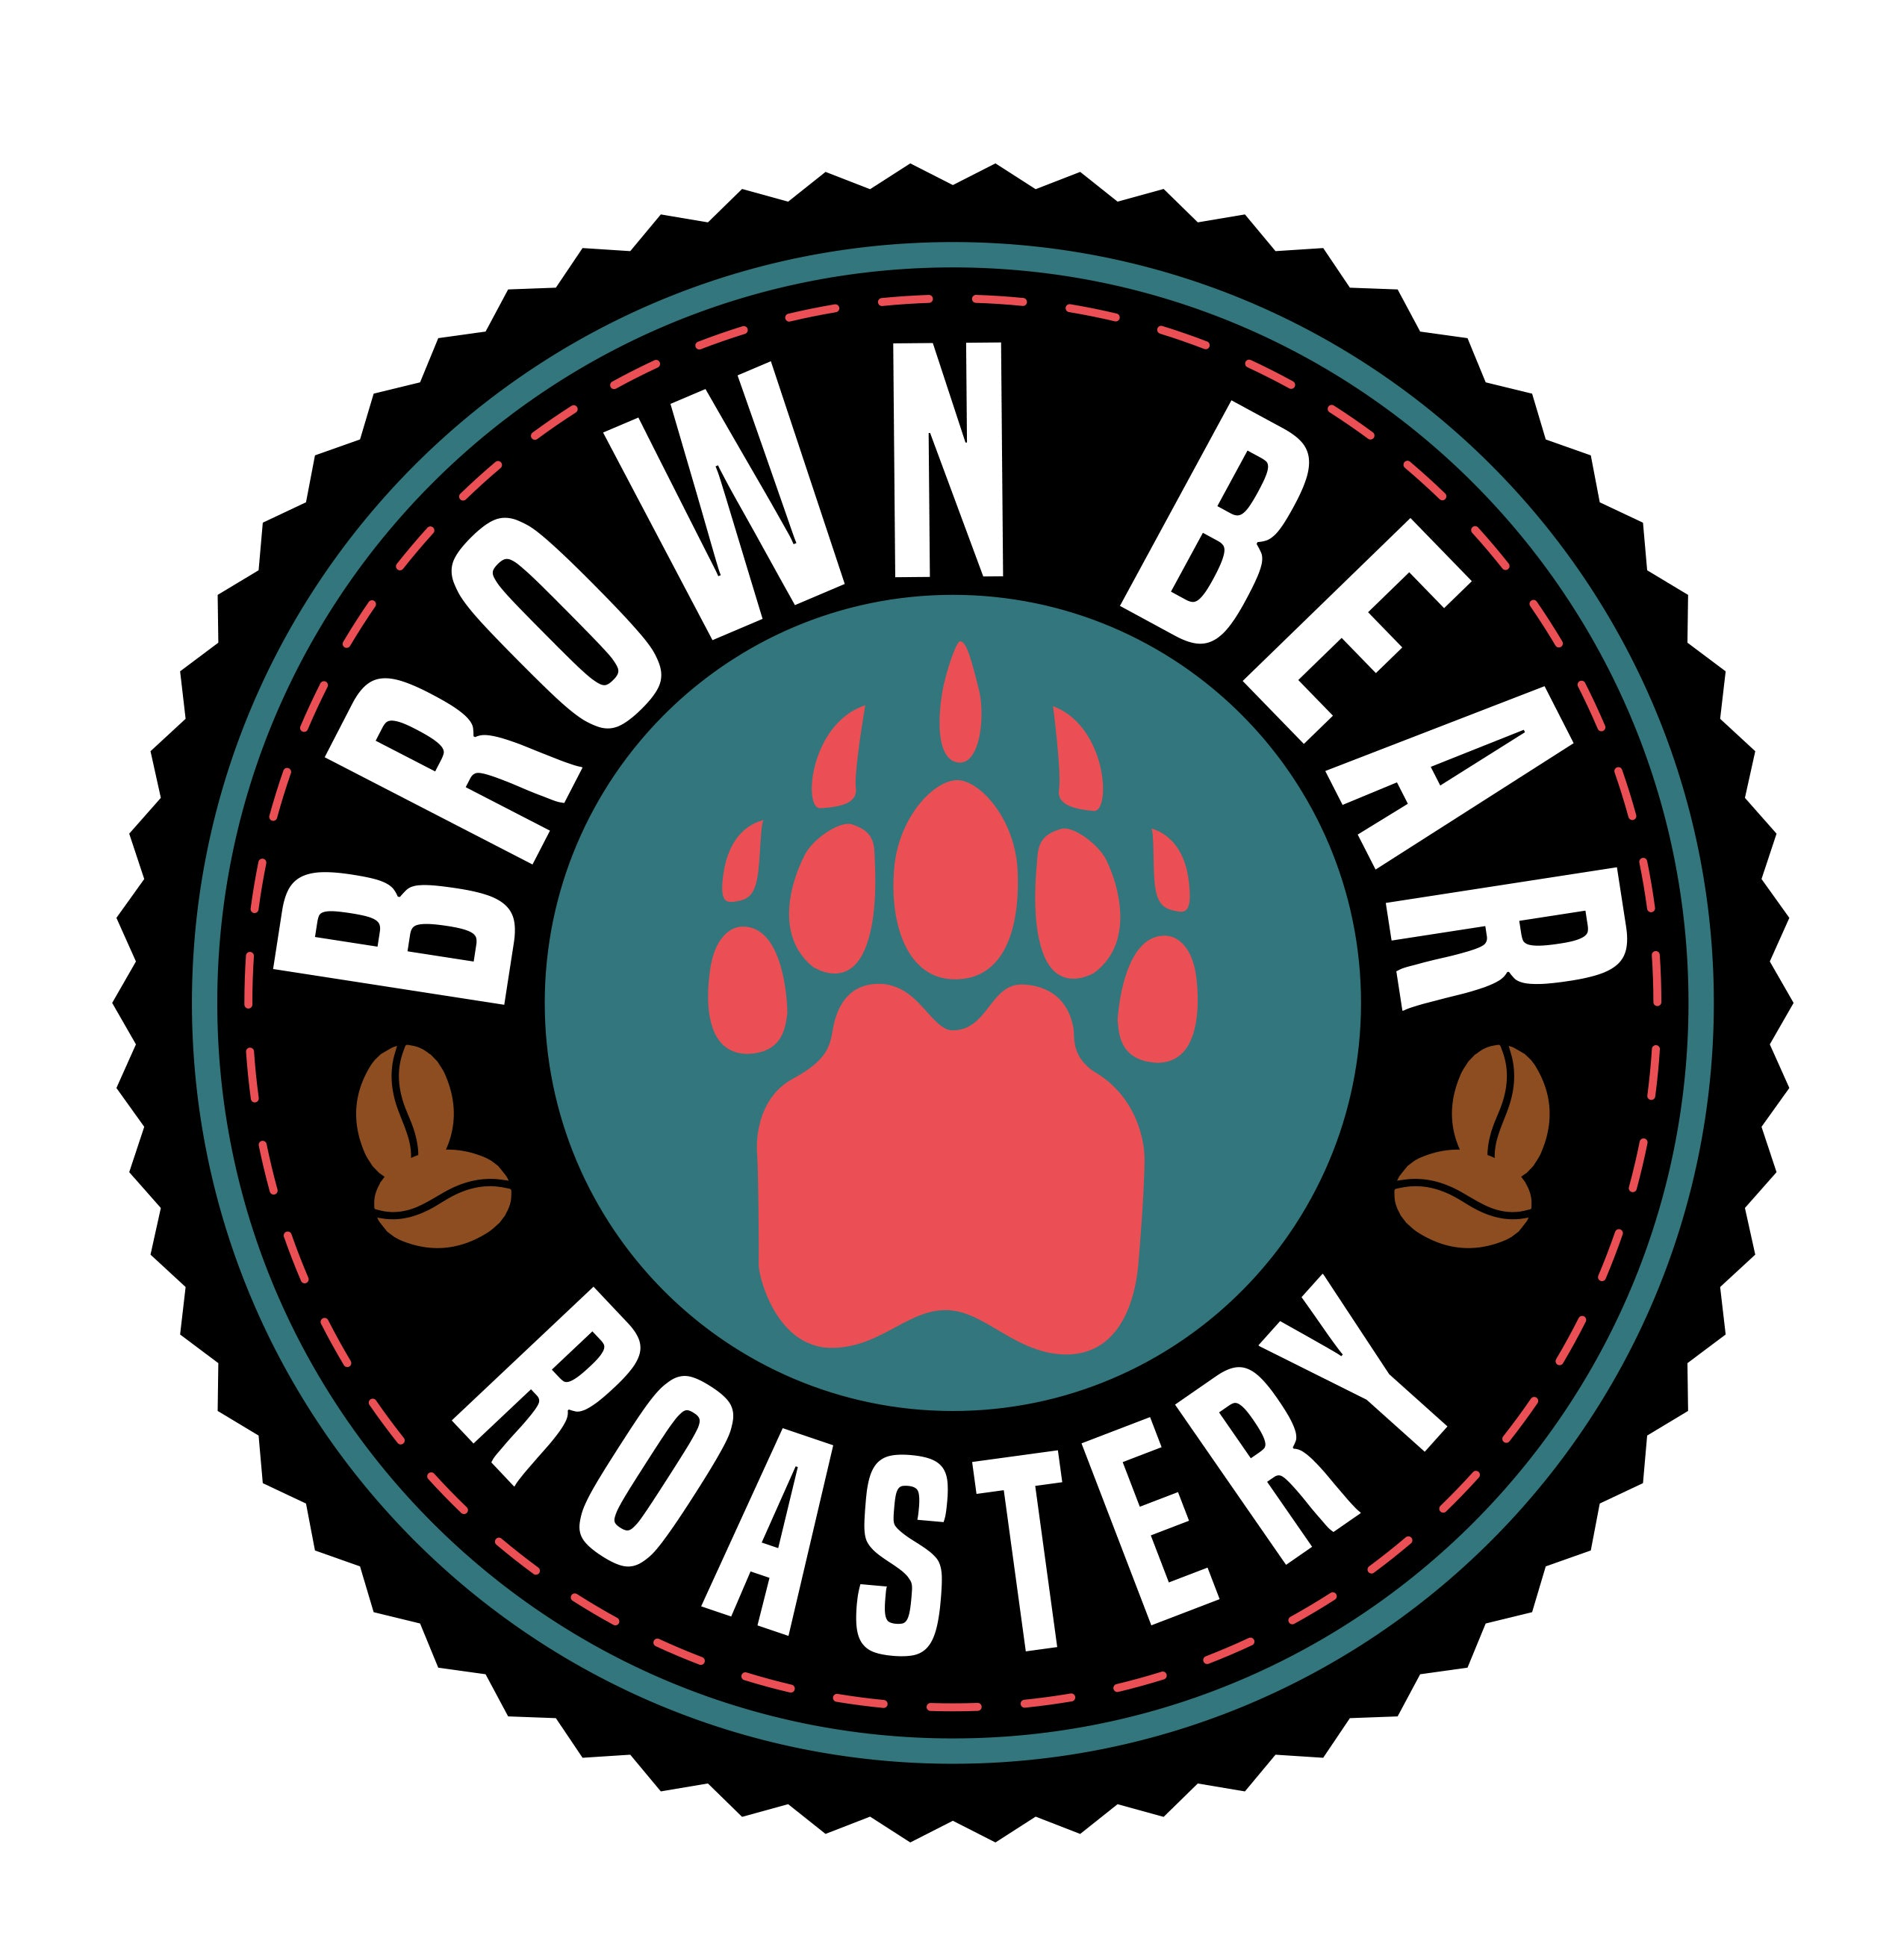 Meet Brown Bear Roastery